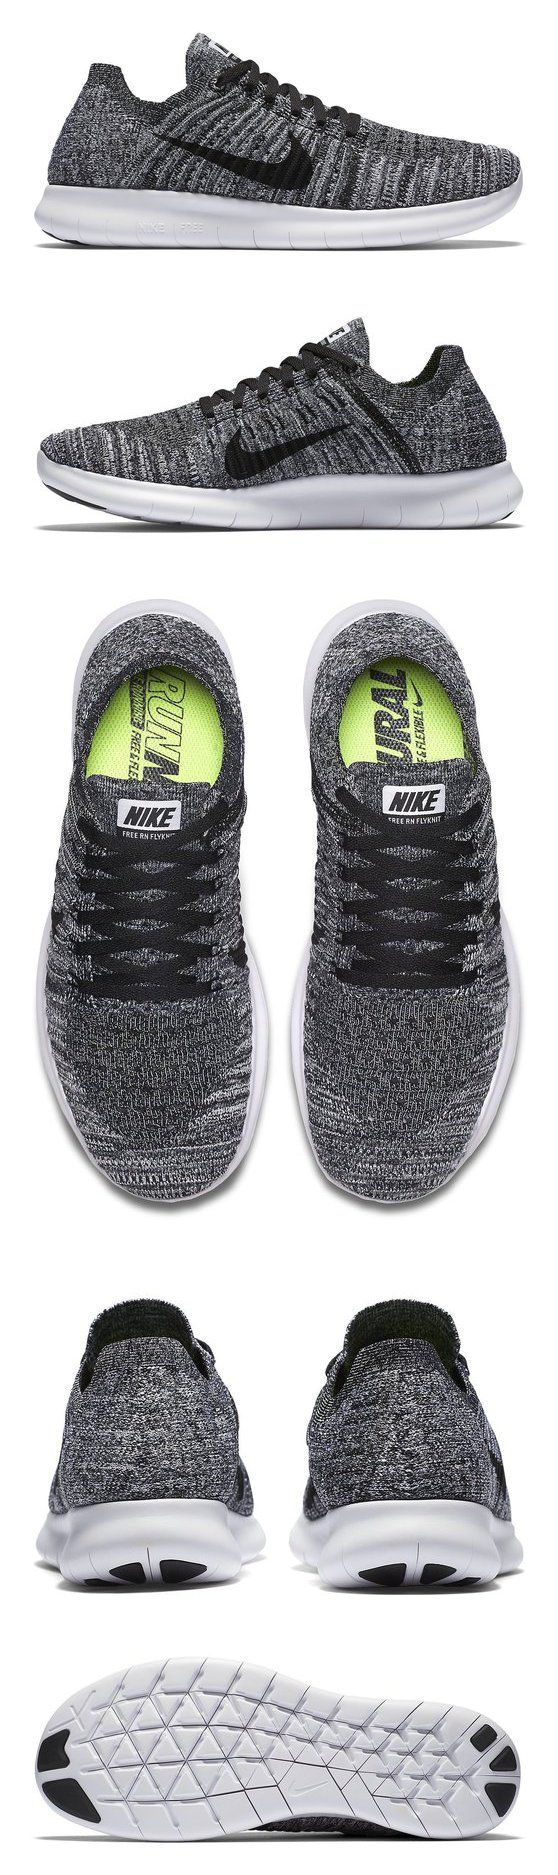 best service 2baa0 fc790 Best 25+ Nike flyknit ideas on Pinterest   Nike free, Workout shoes and Nike  sneakers